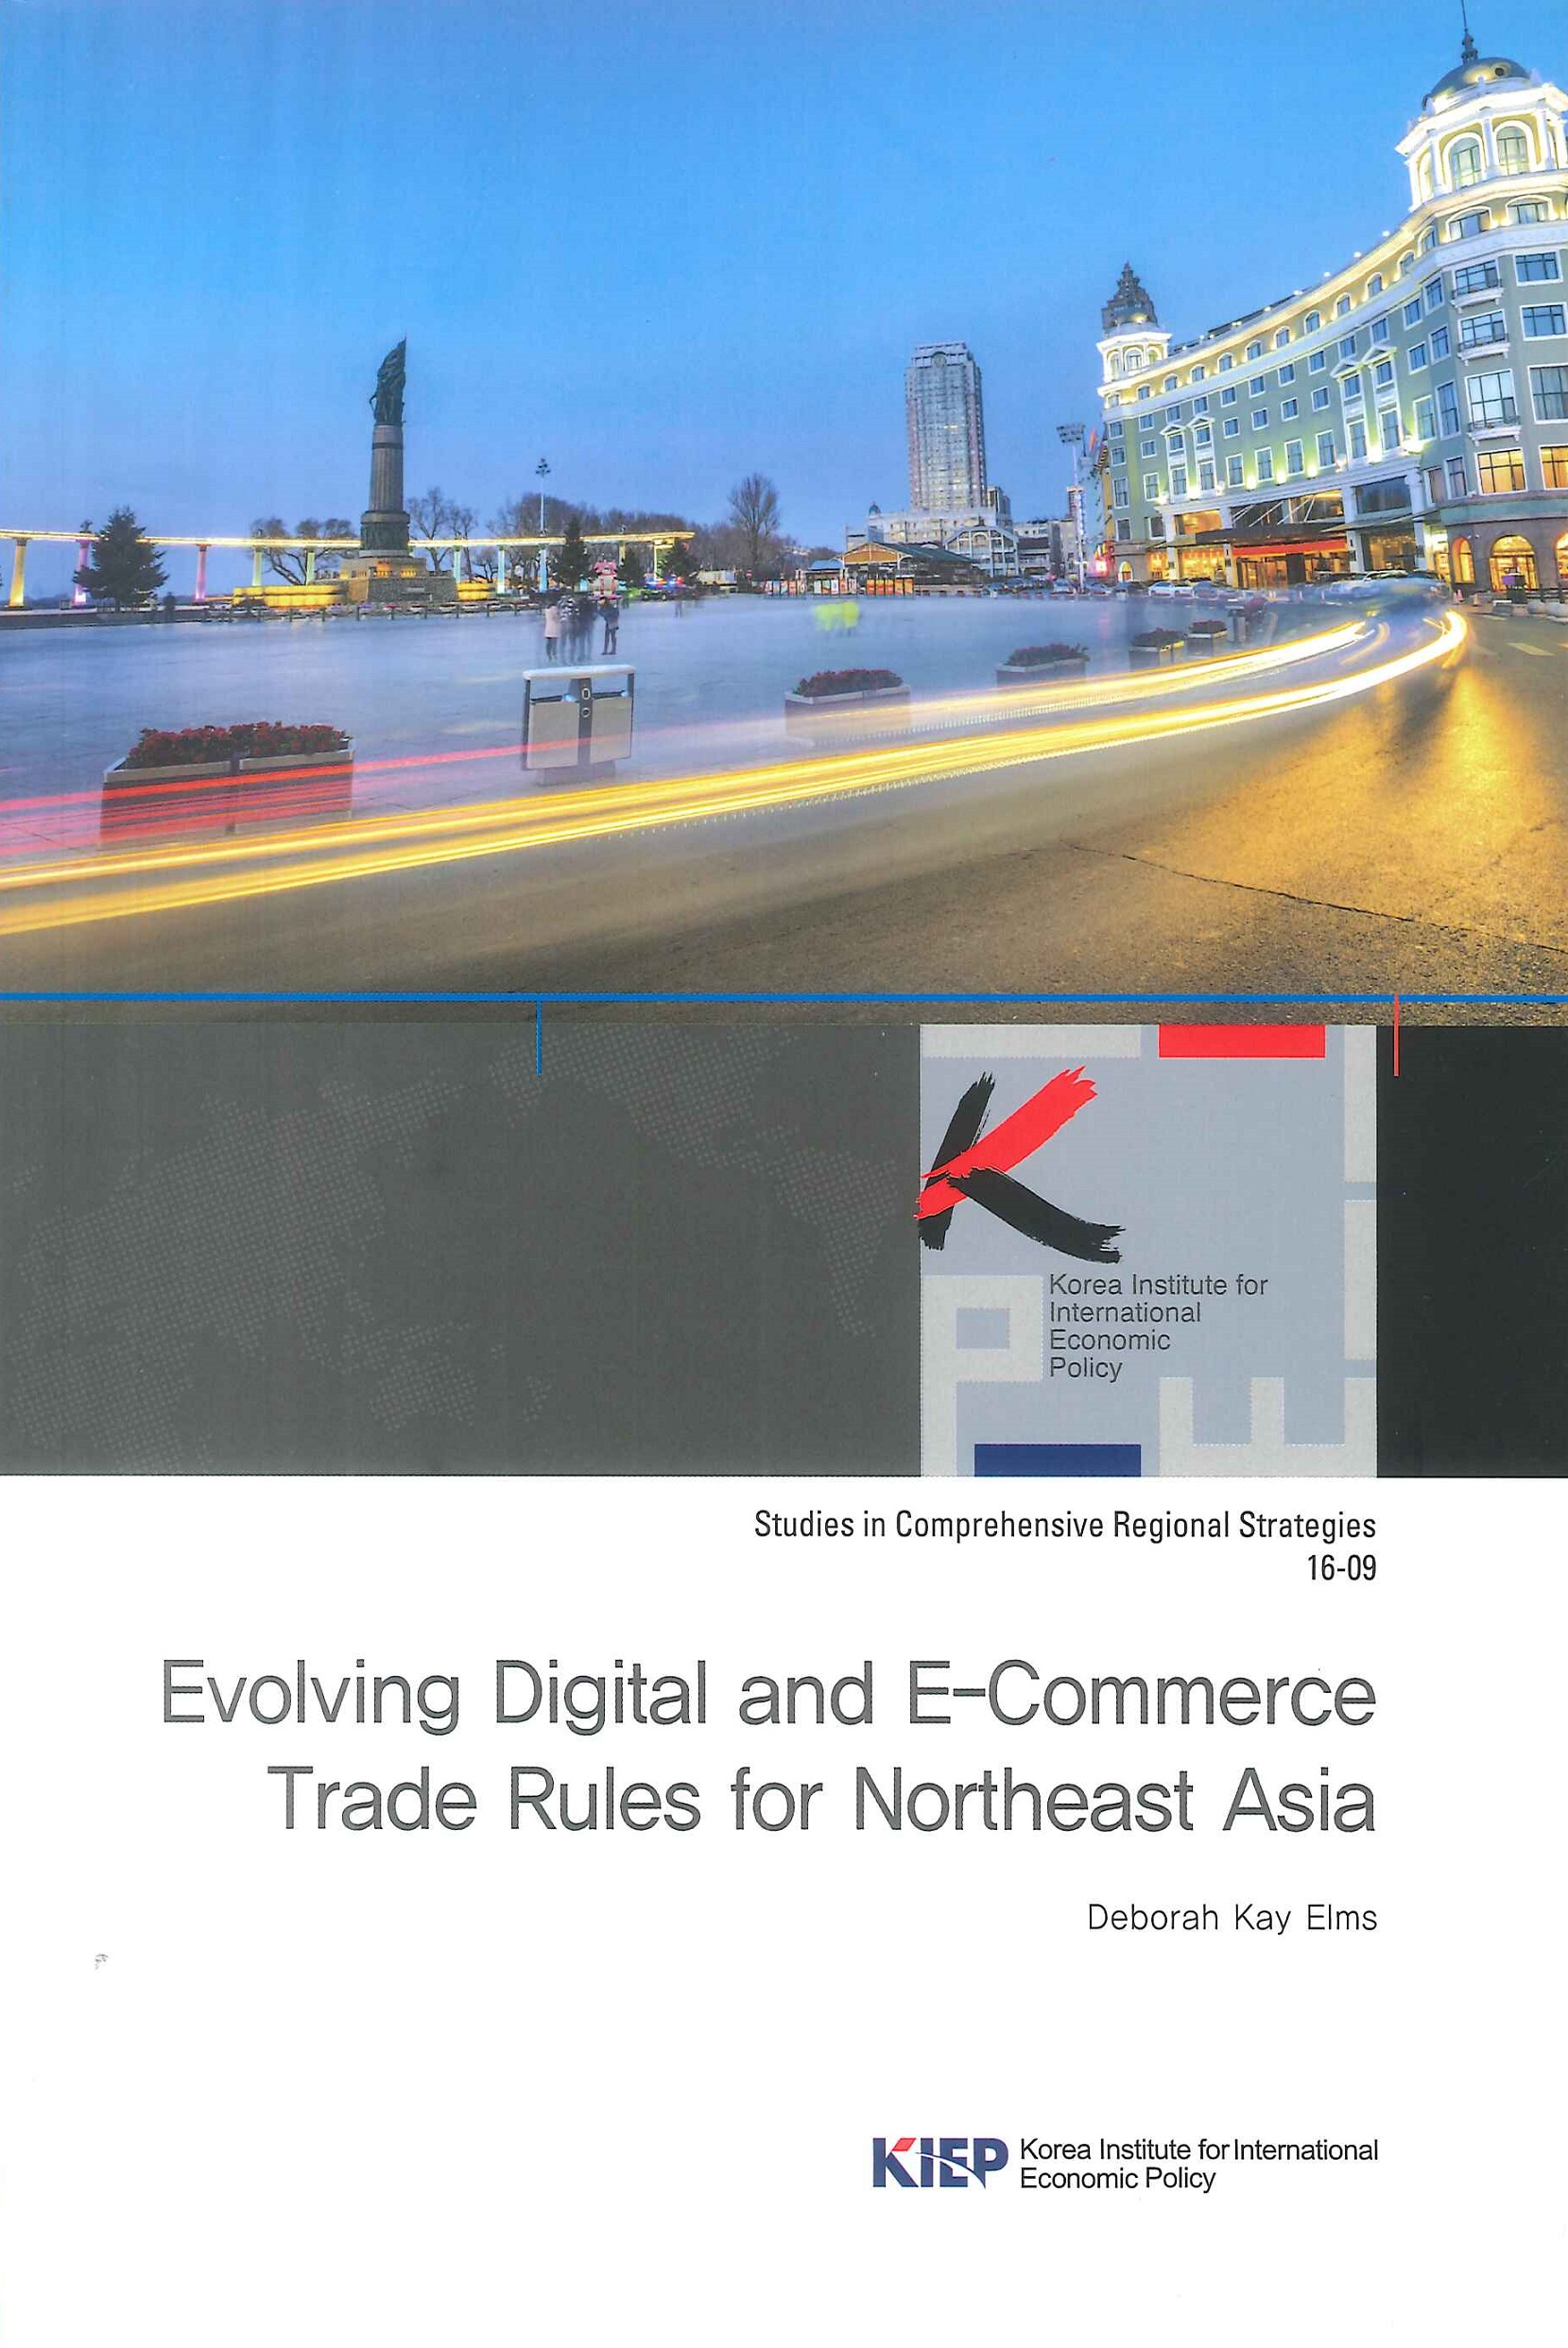 Evolving digital and e-commerce trade rules for Northeast Asia